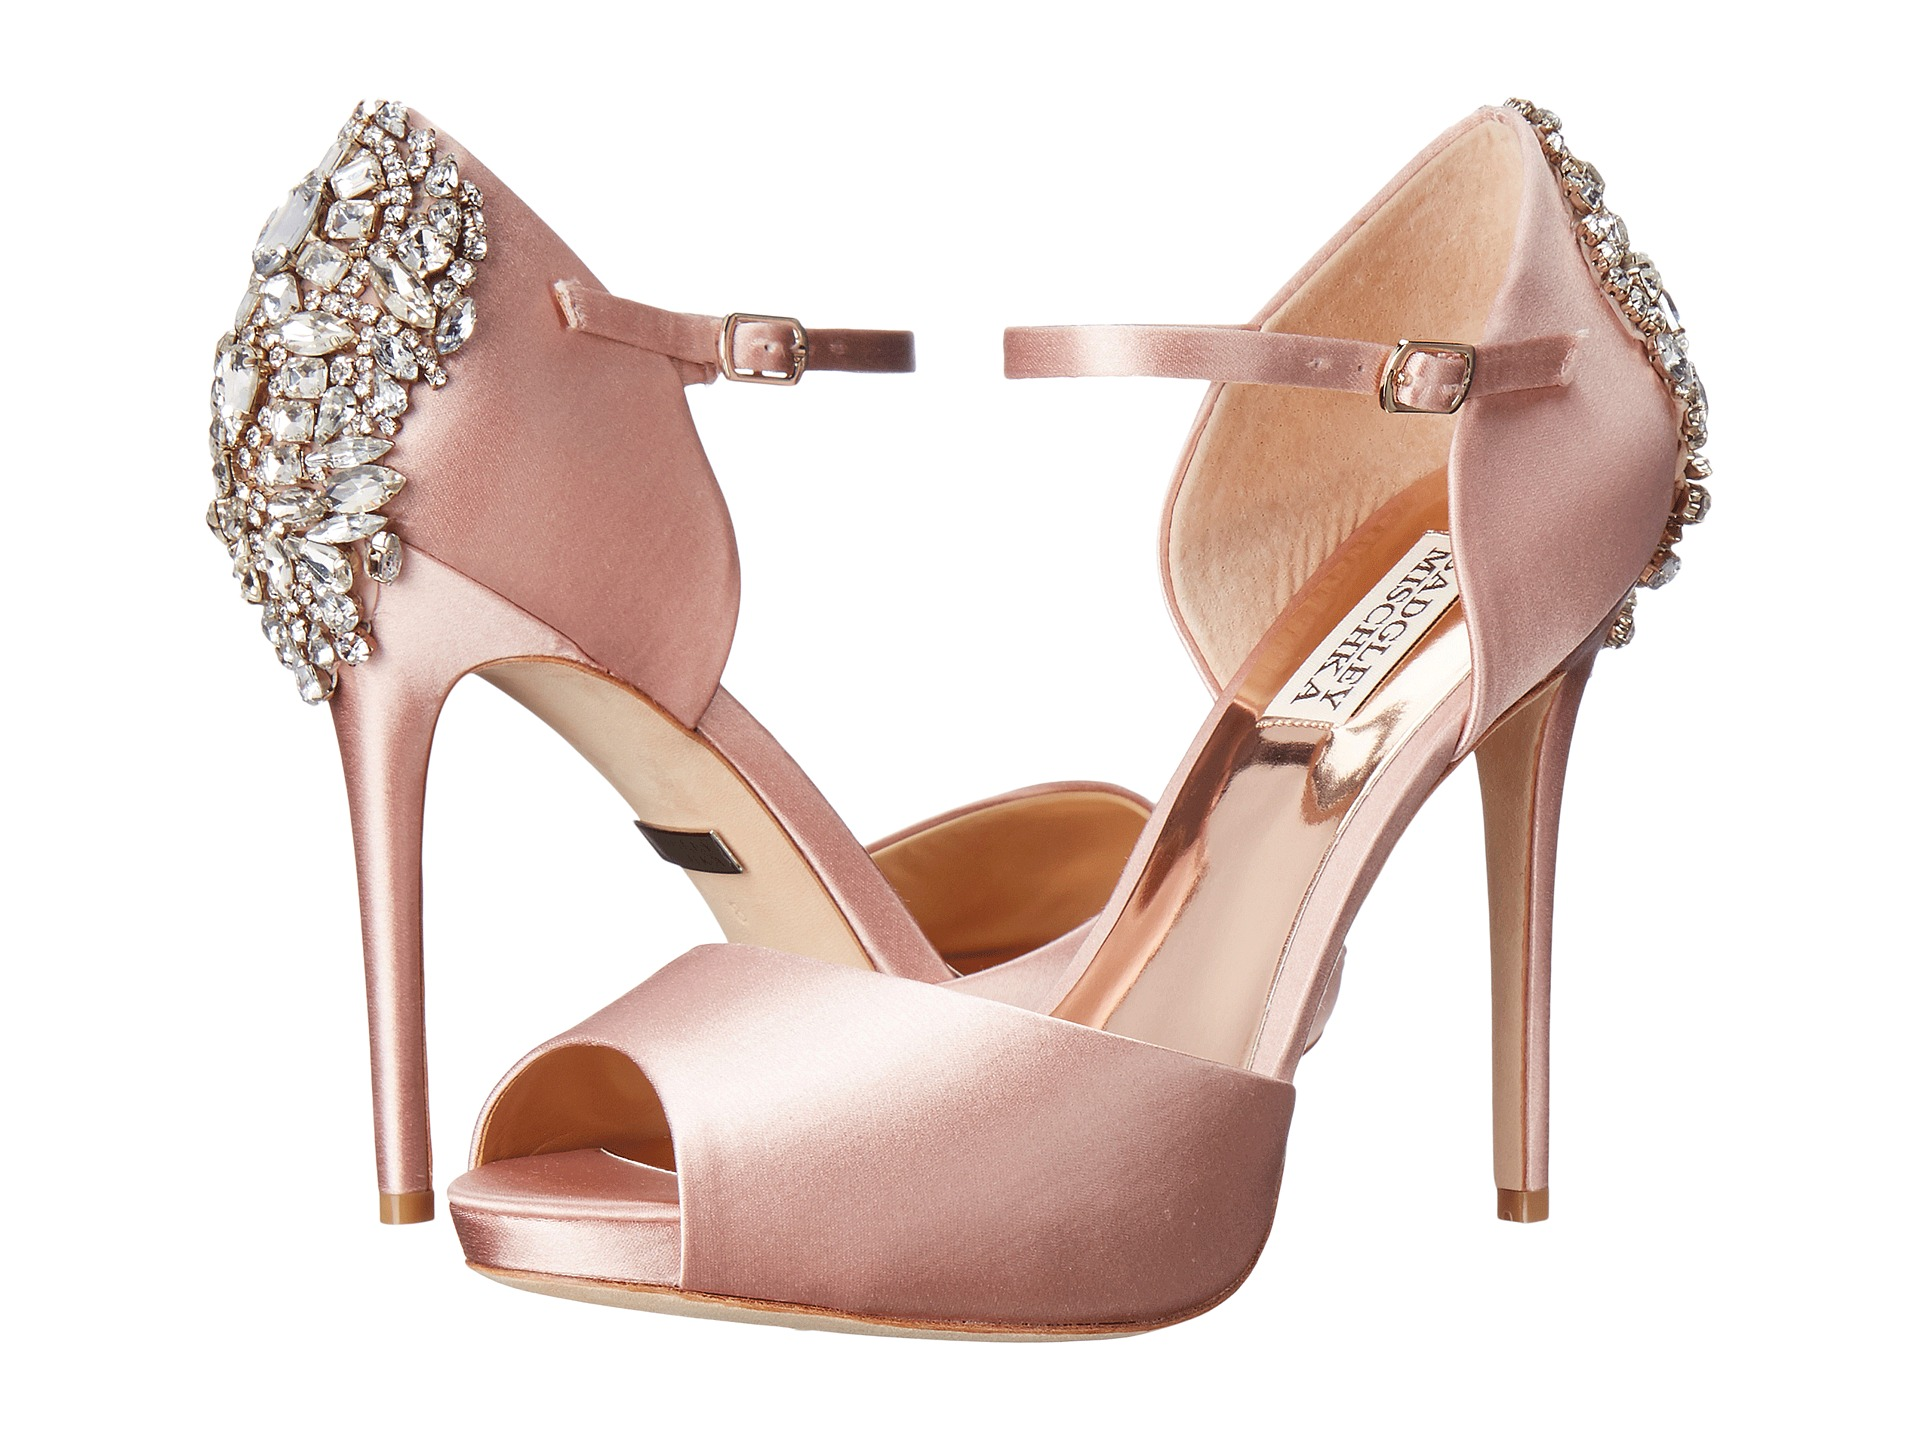 Badgley Mischka Dawn at Zappos